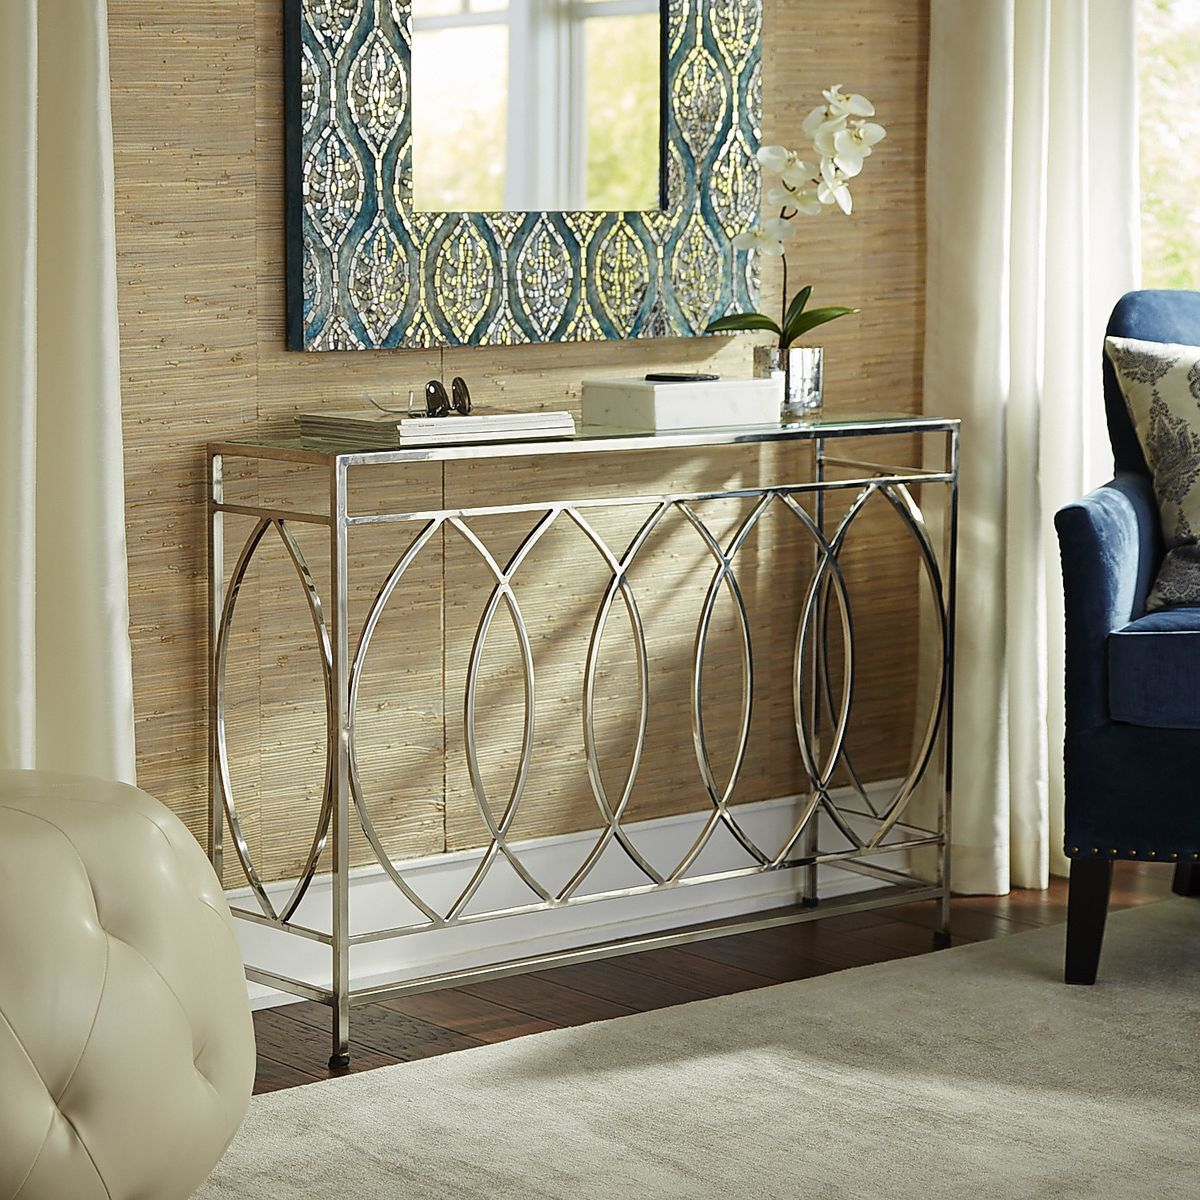 Elana Console Table   Stainless Steel | Pier 1 Imports